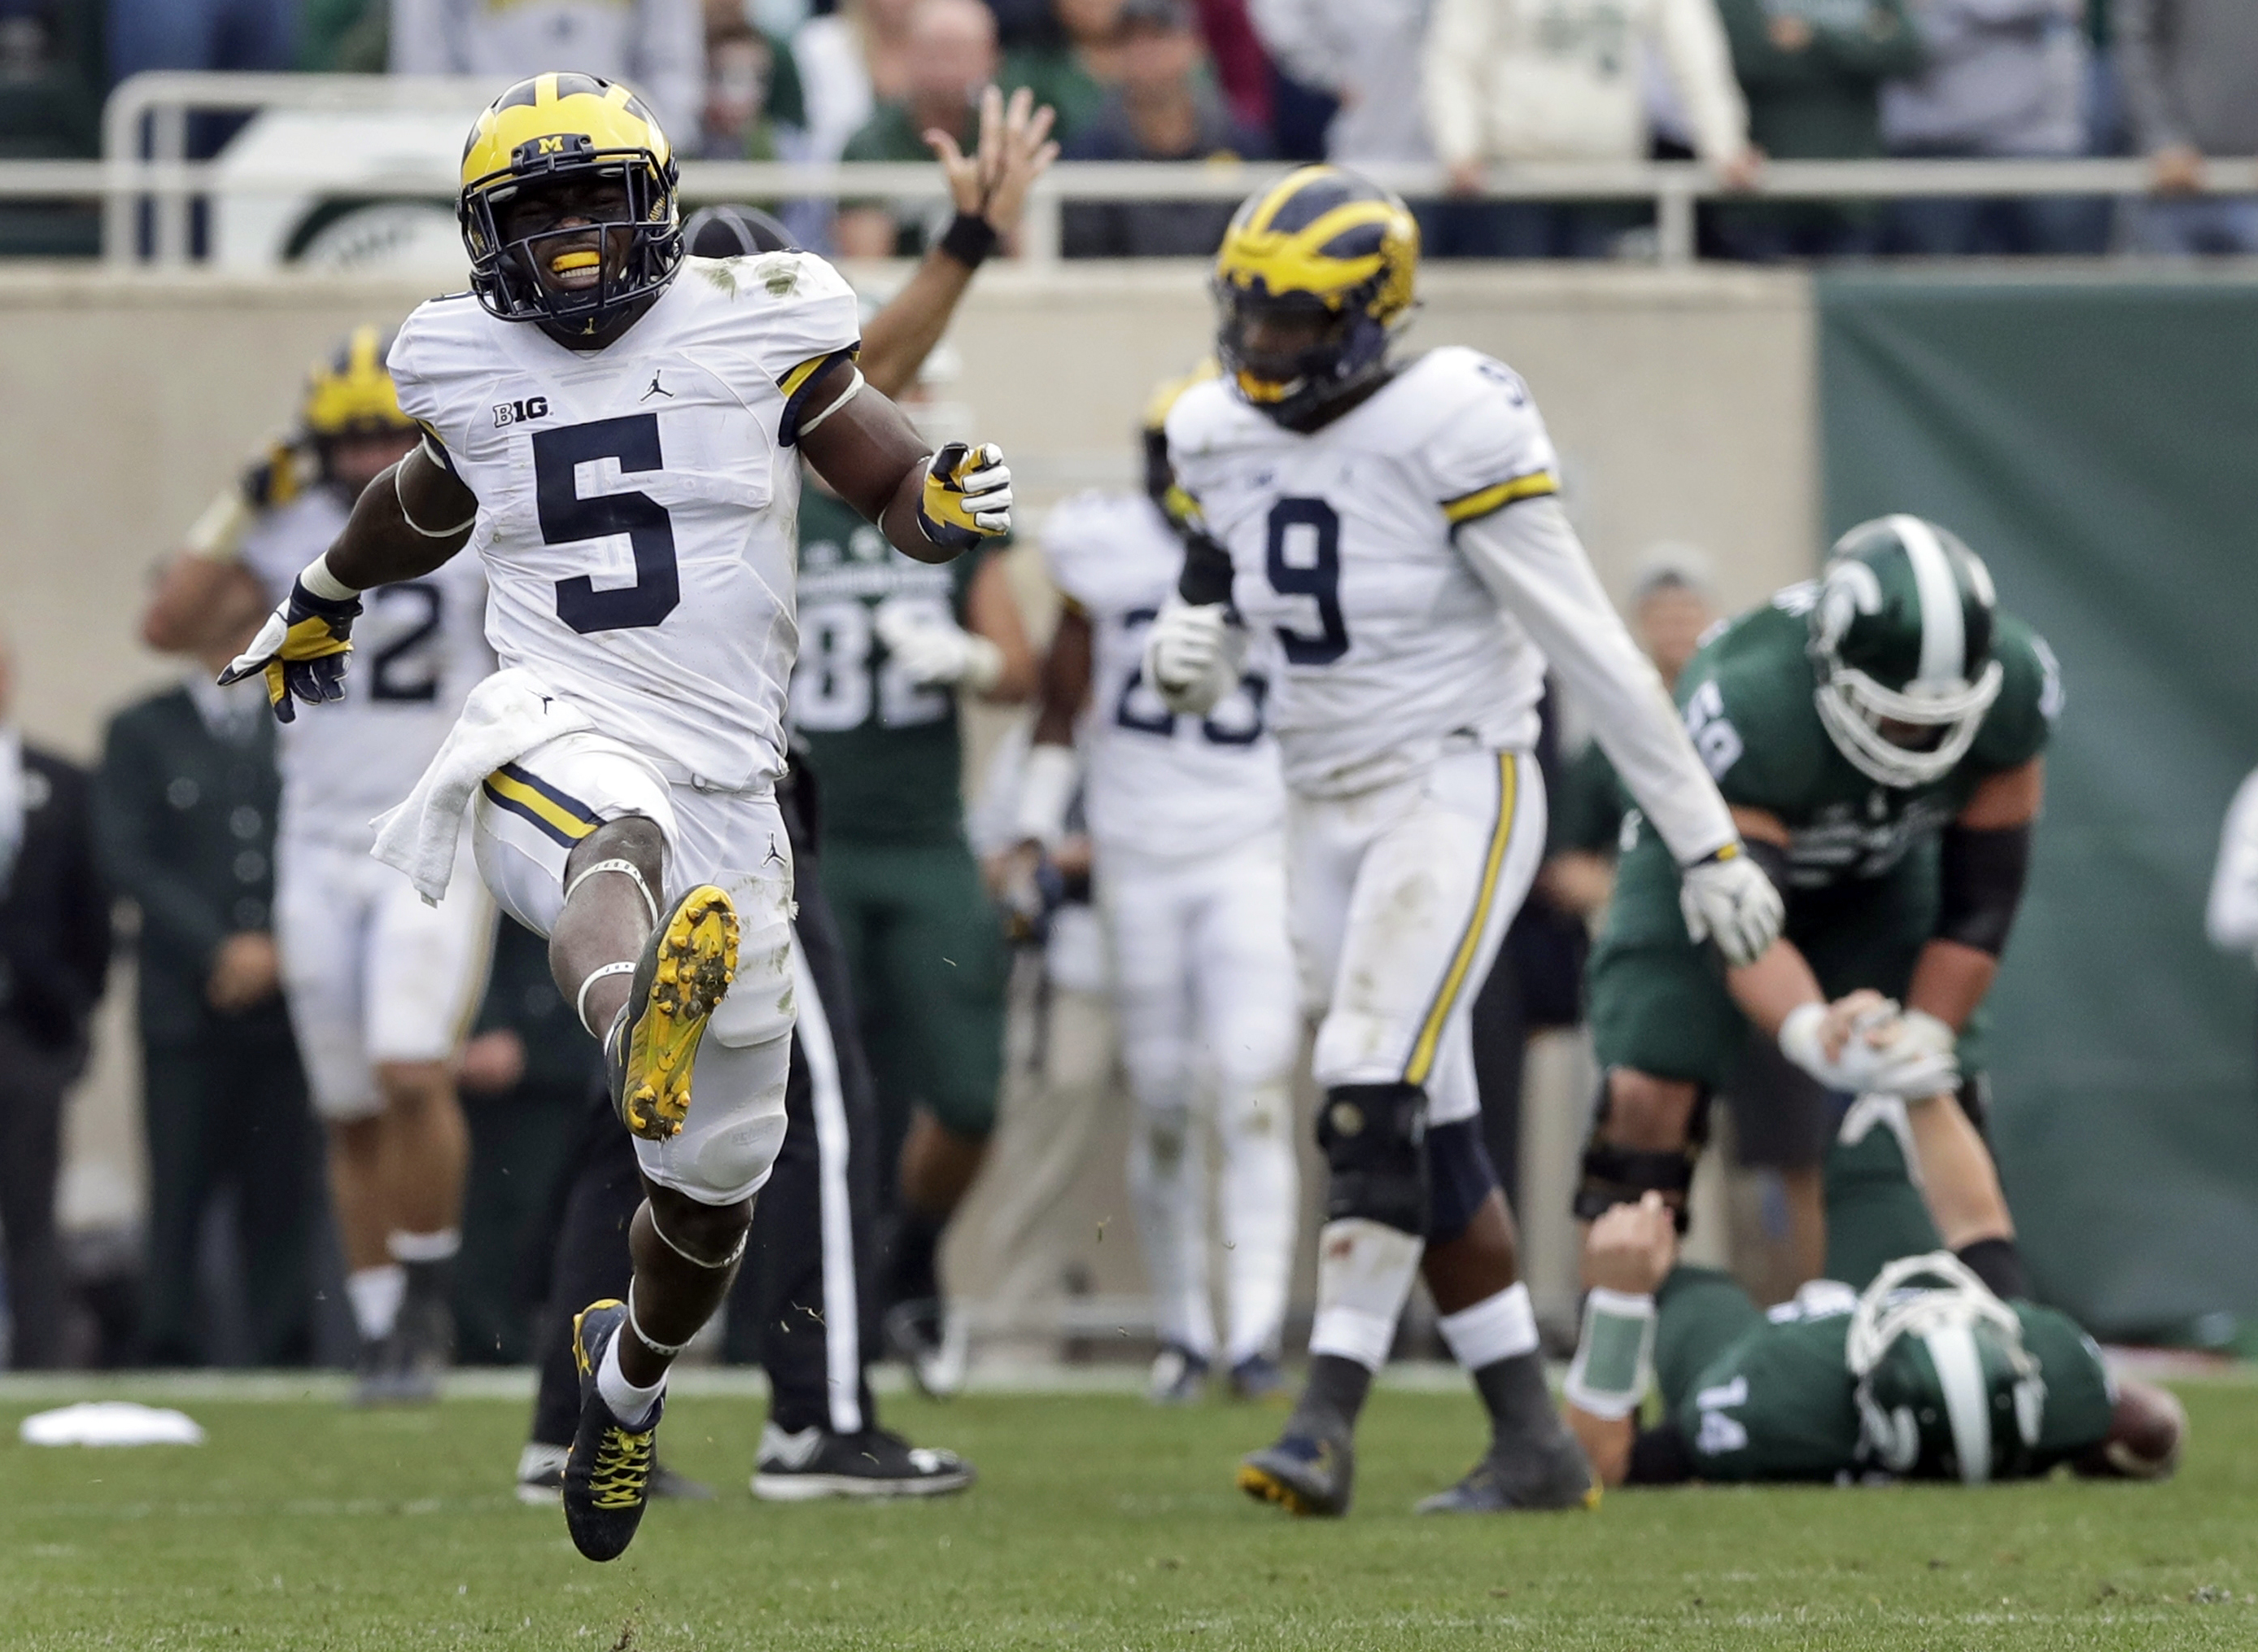 Michigan linebacker Jabrill Peppers (5) celebrates after sacking Michigan State quarterback Brian Lewerke (14) during the second half of a college football game, Saturday, Oct. 29, 2016, in East Lansing, Mich. Michigan defeated Michigan State 32-23. (AP P